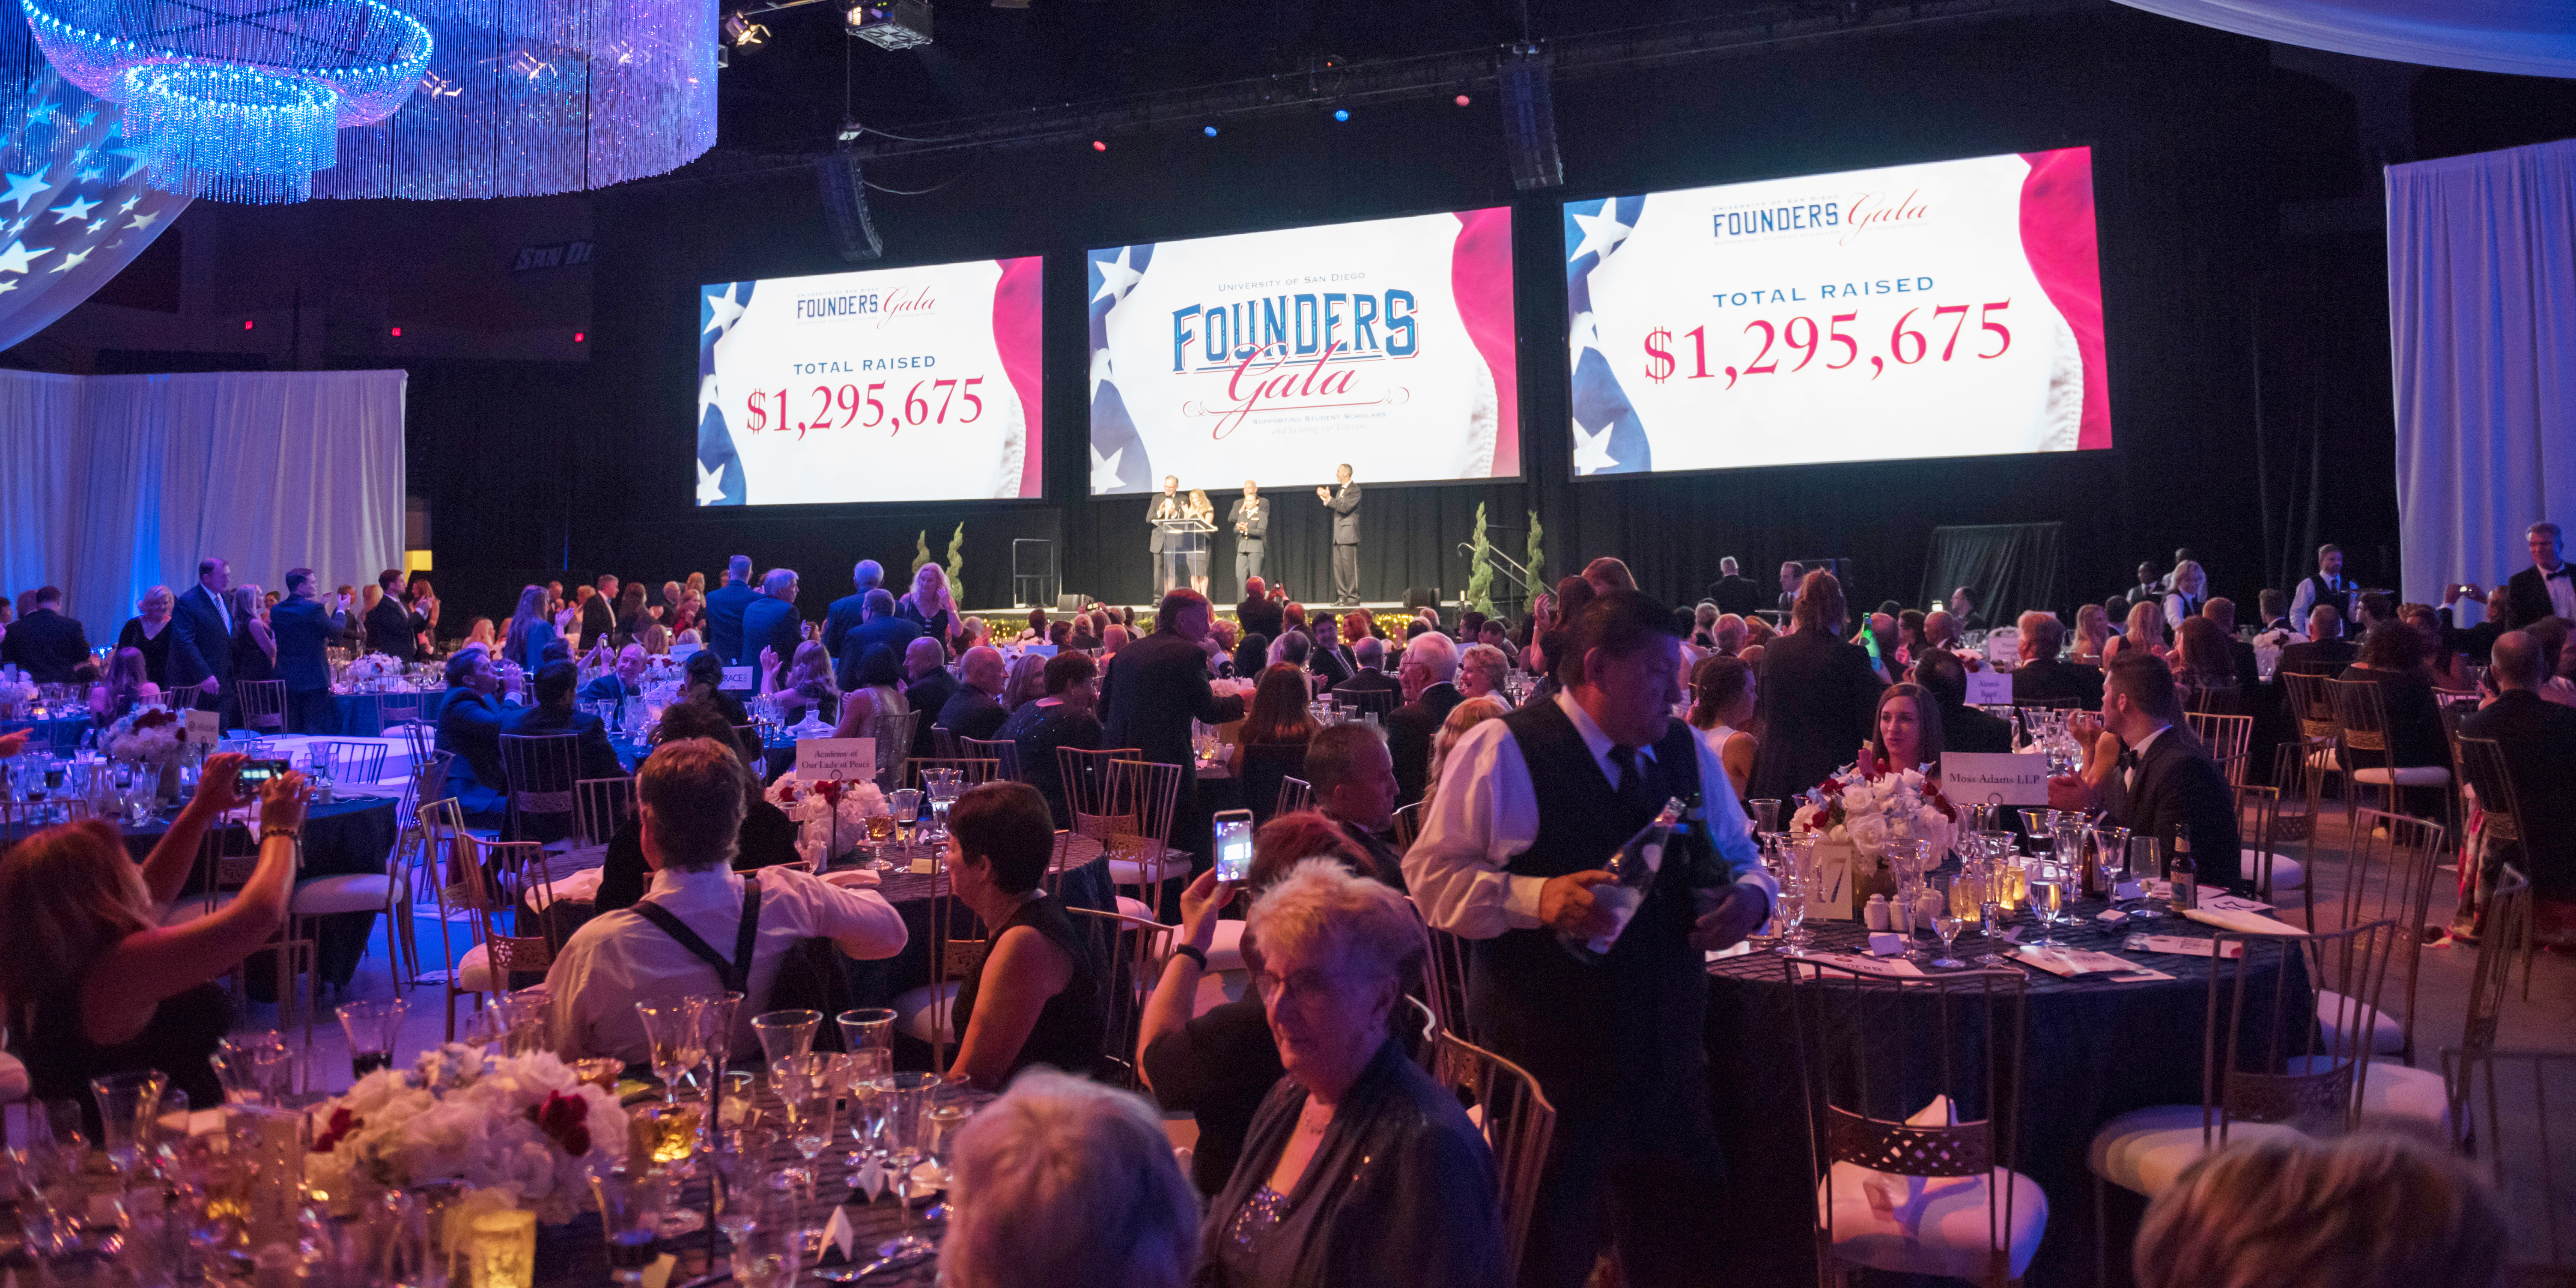 2017 Founders Gala overview shot